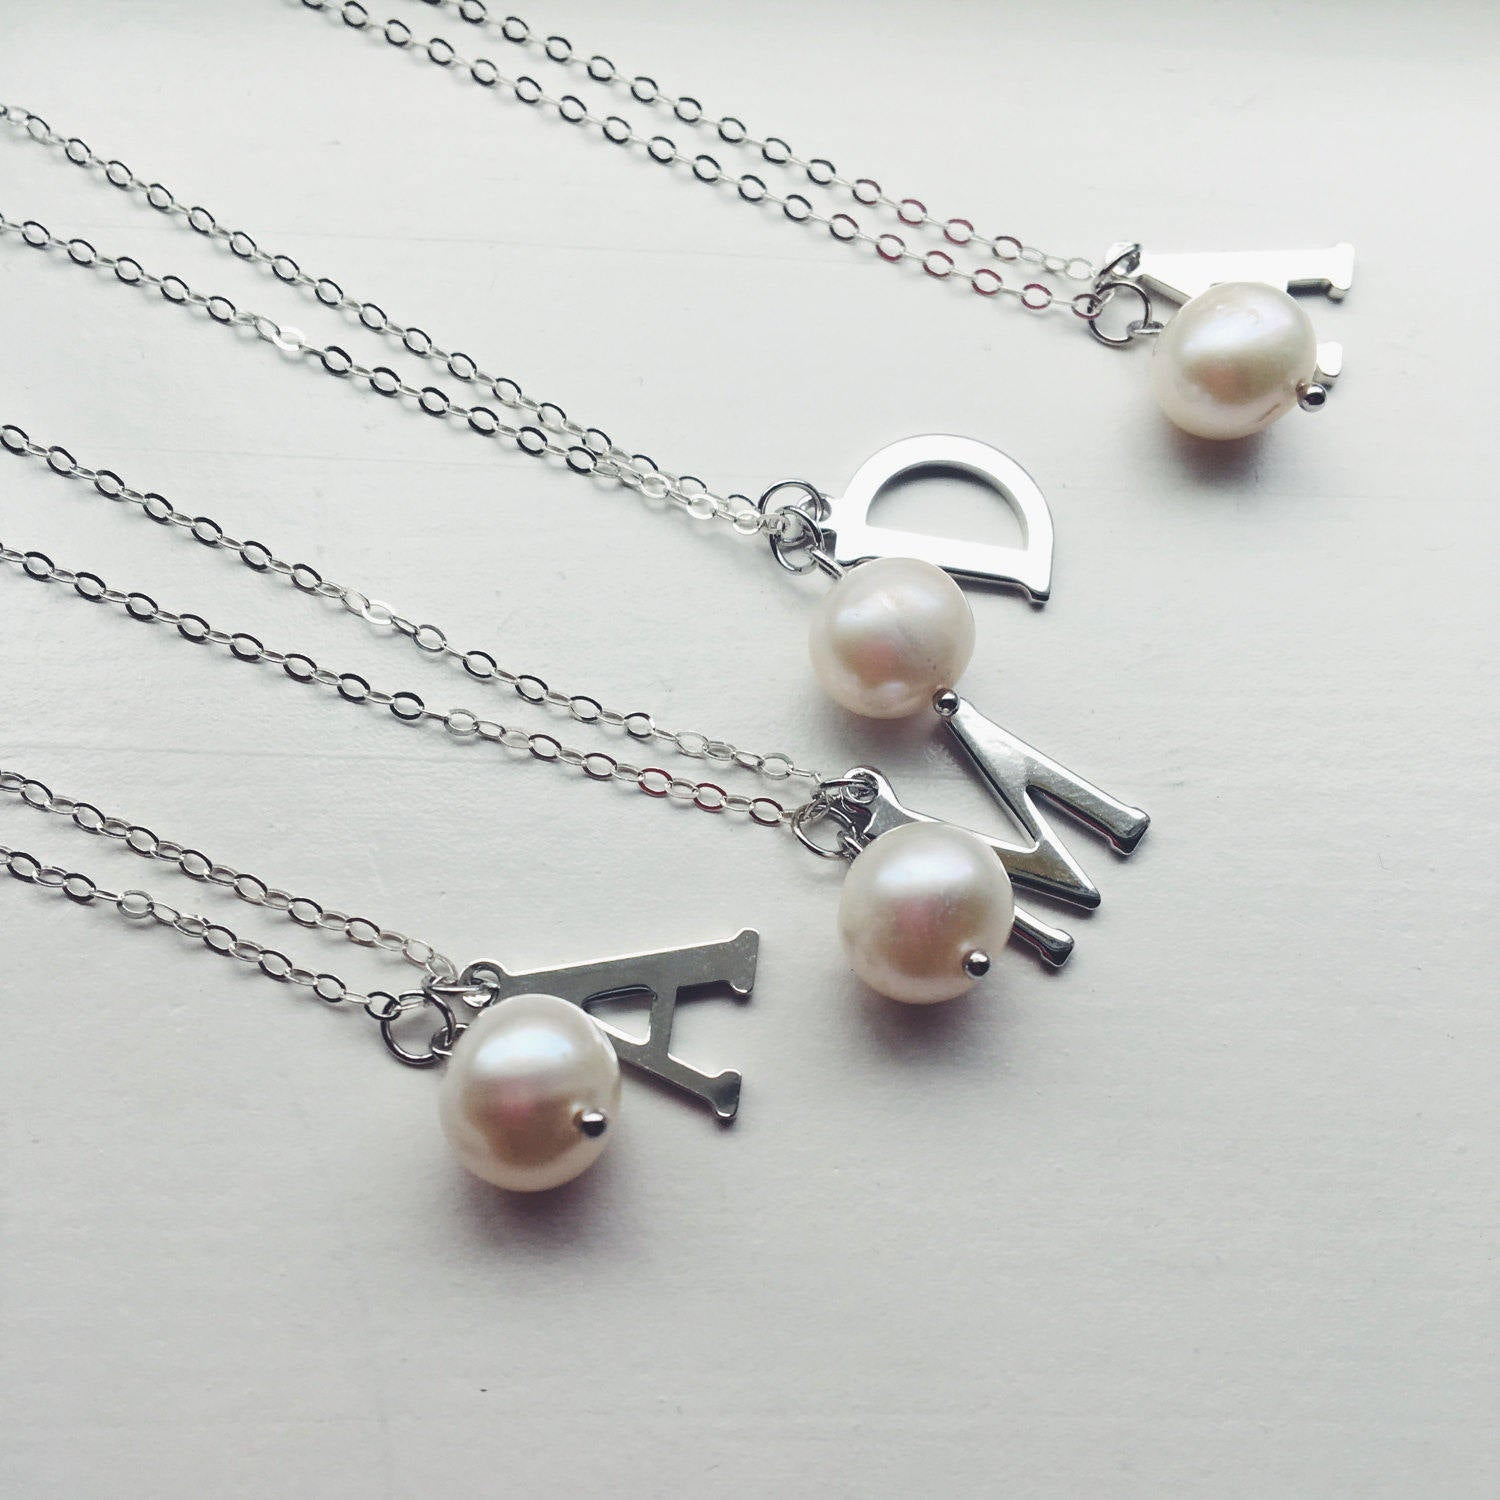 Silver Freshwater Pearl Necklace White Pearl Initial Necklace Sterling silver chain - Bridesmaid Jewelry - Wedding Jewelry